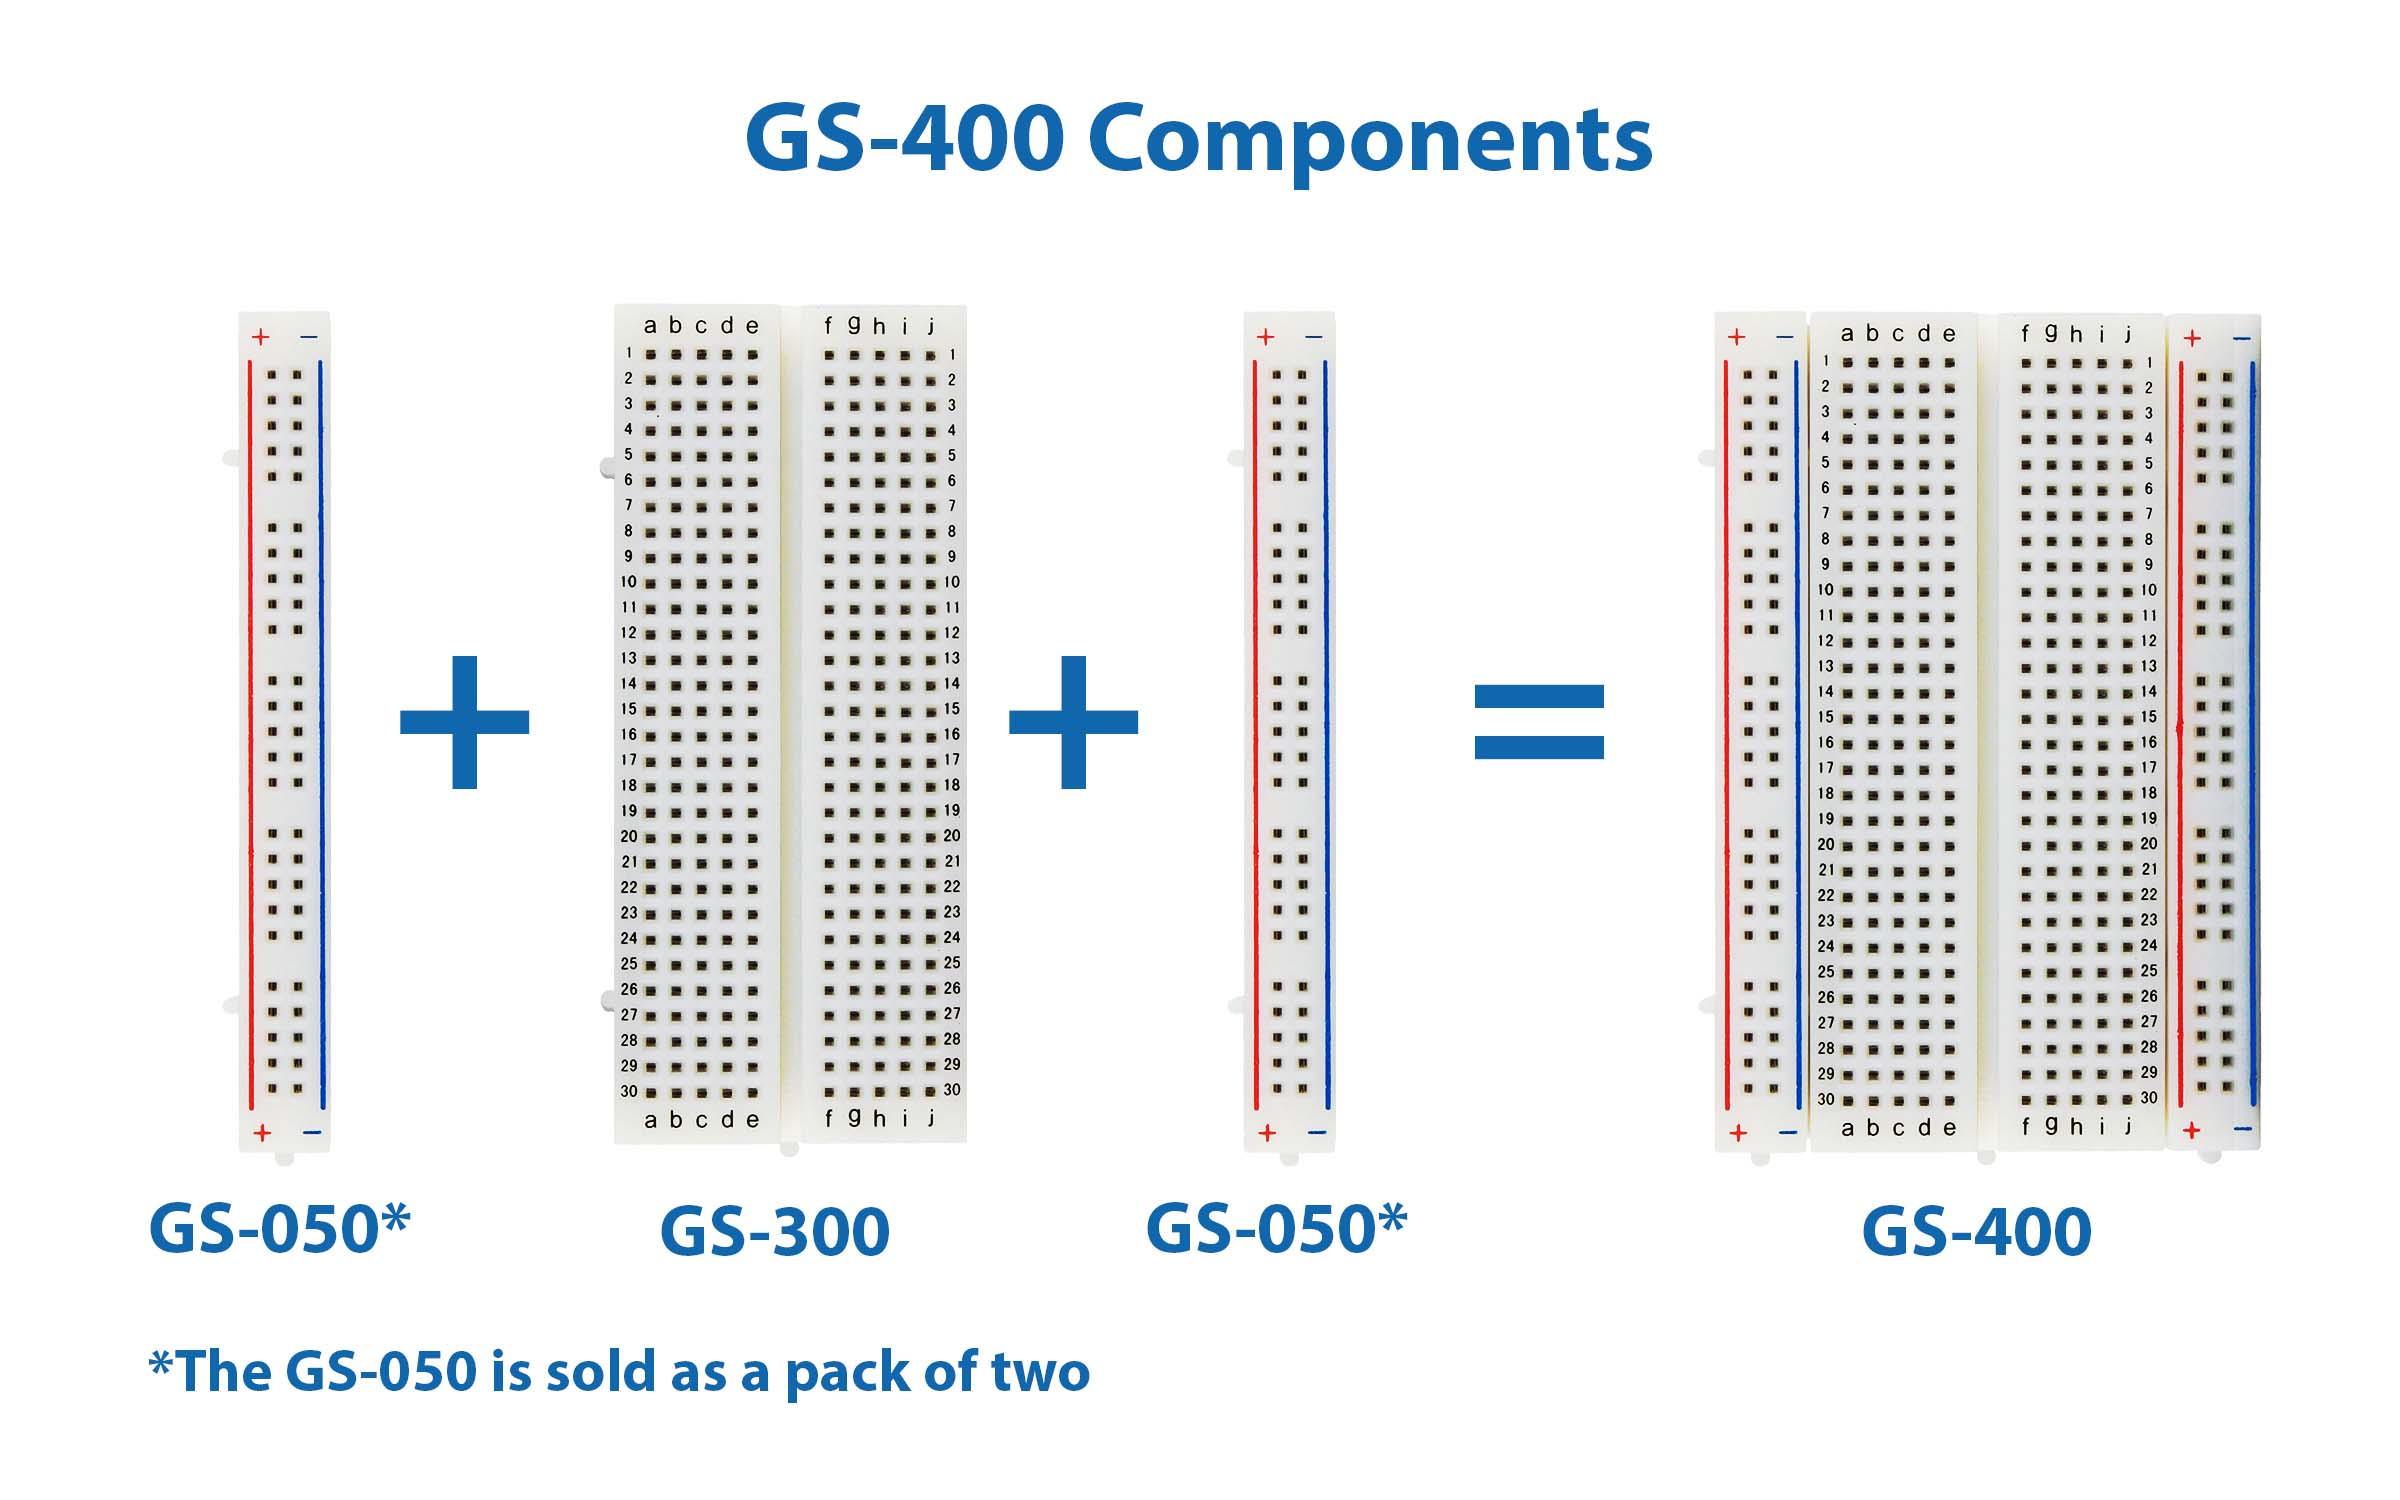 GS-400 Components Diagram